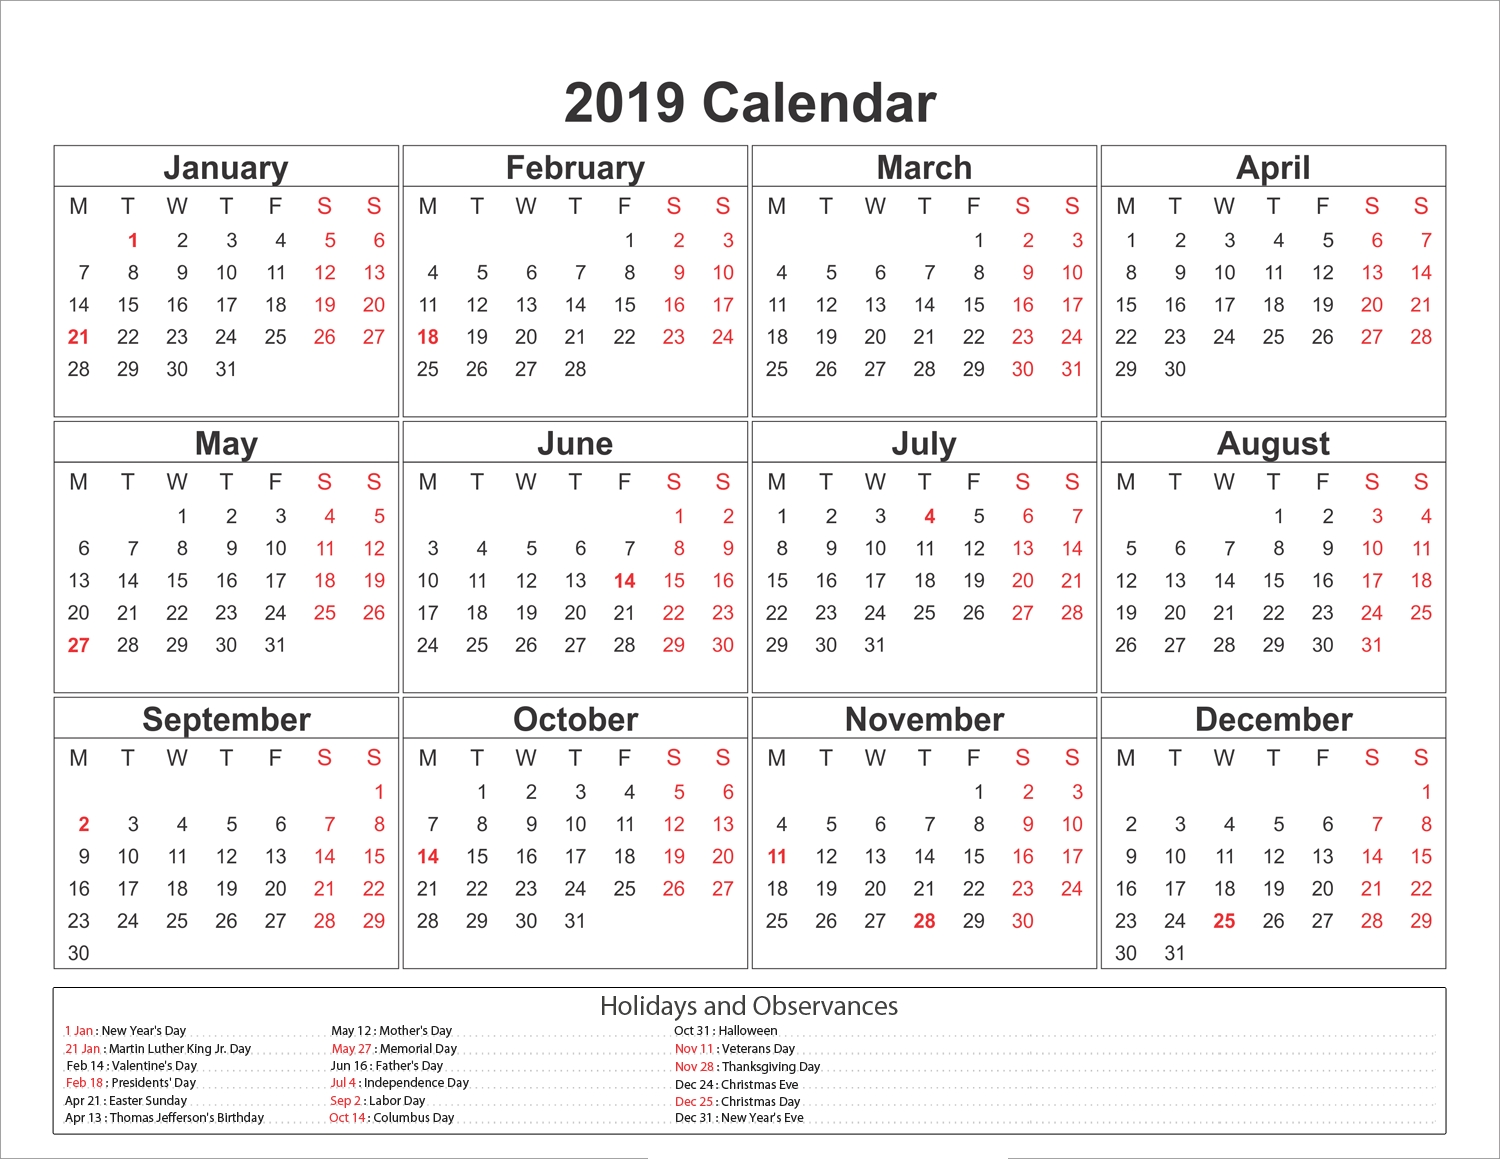 Blank Printable Calendar 2019 With Holidays-Holidays In Philippines Printable